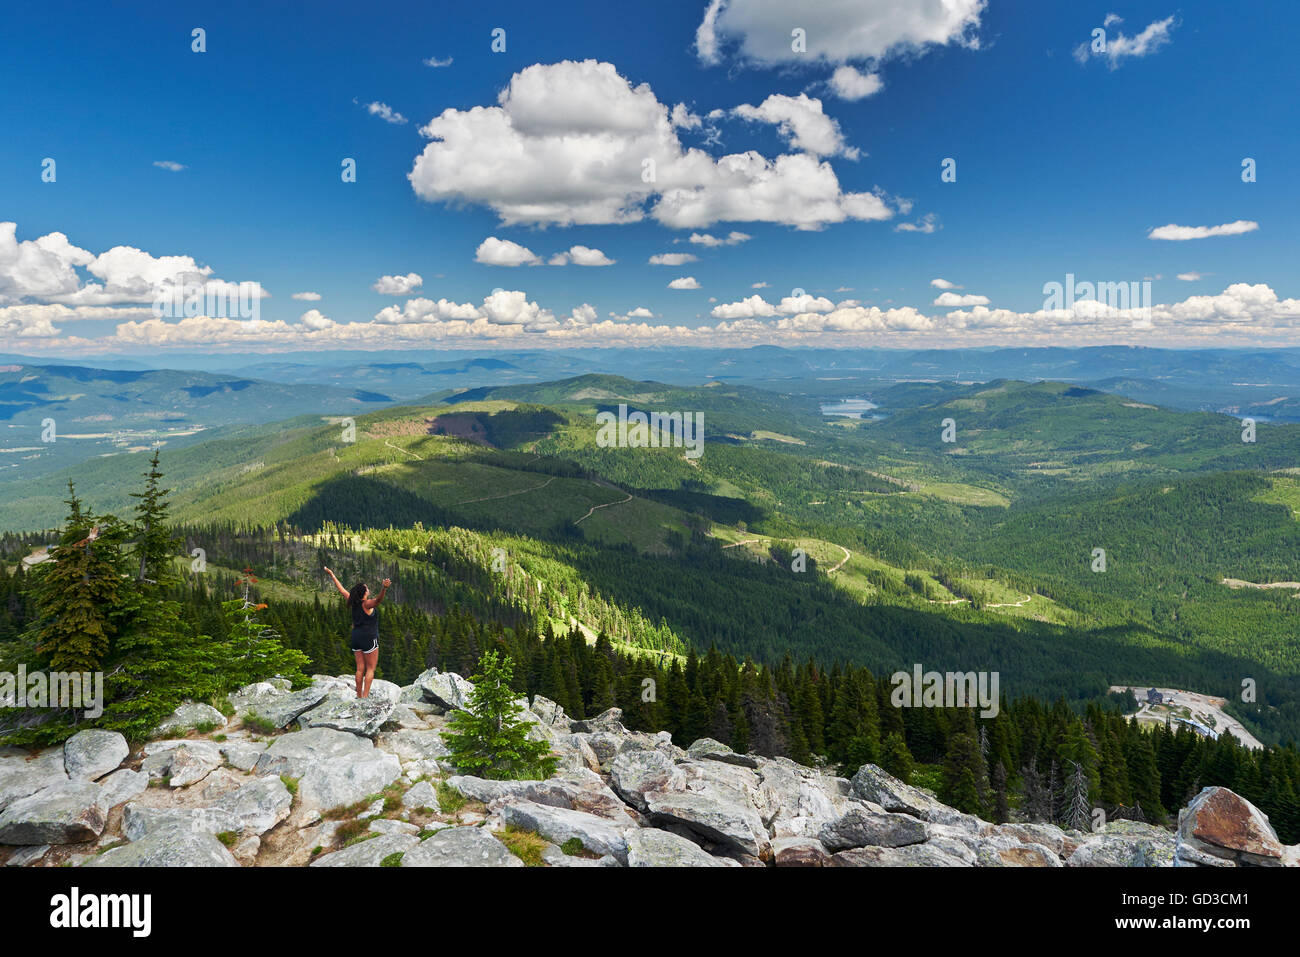 Woman standing on the edge of rocks, arms in the air - Mount Spokane in washington, USA. Stock Photo